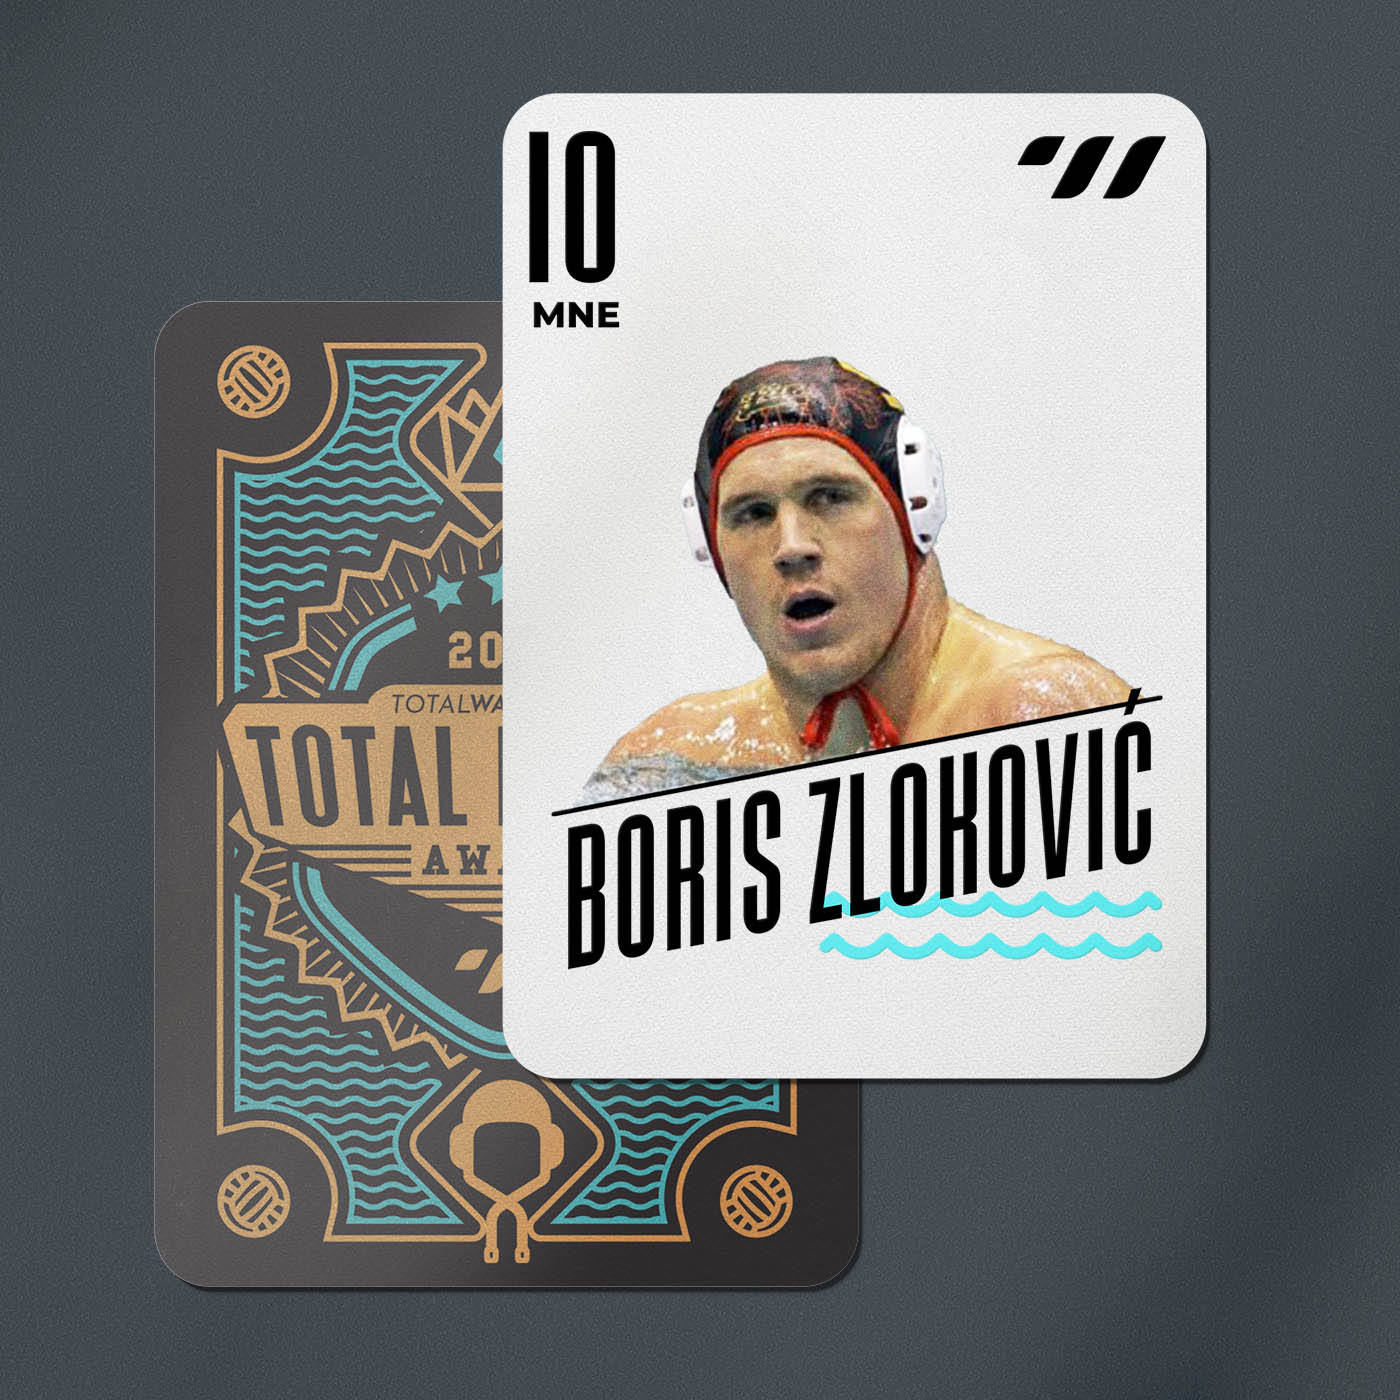 CENTER FORWARD - Boris Zlokovic (MNE)